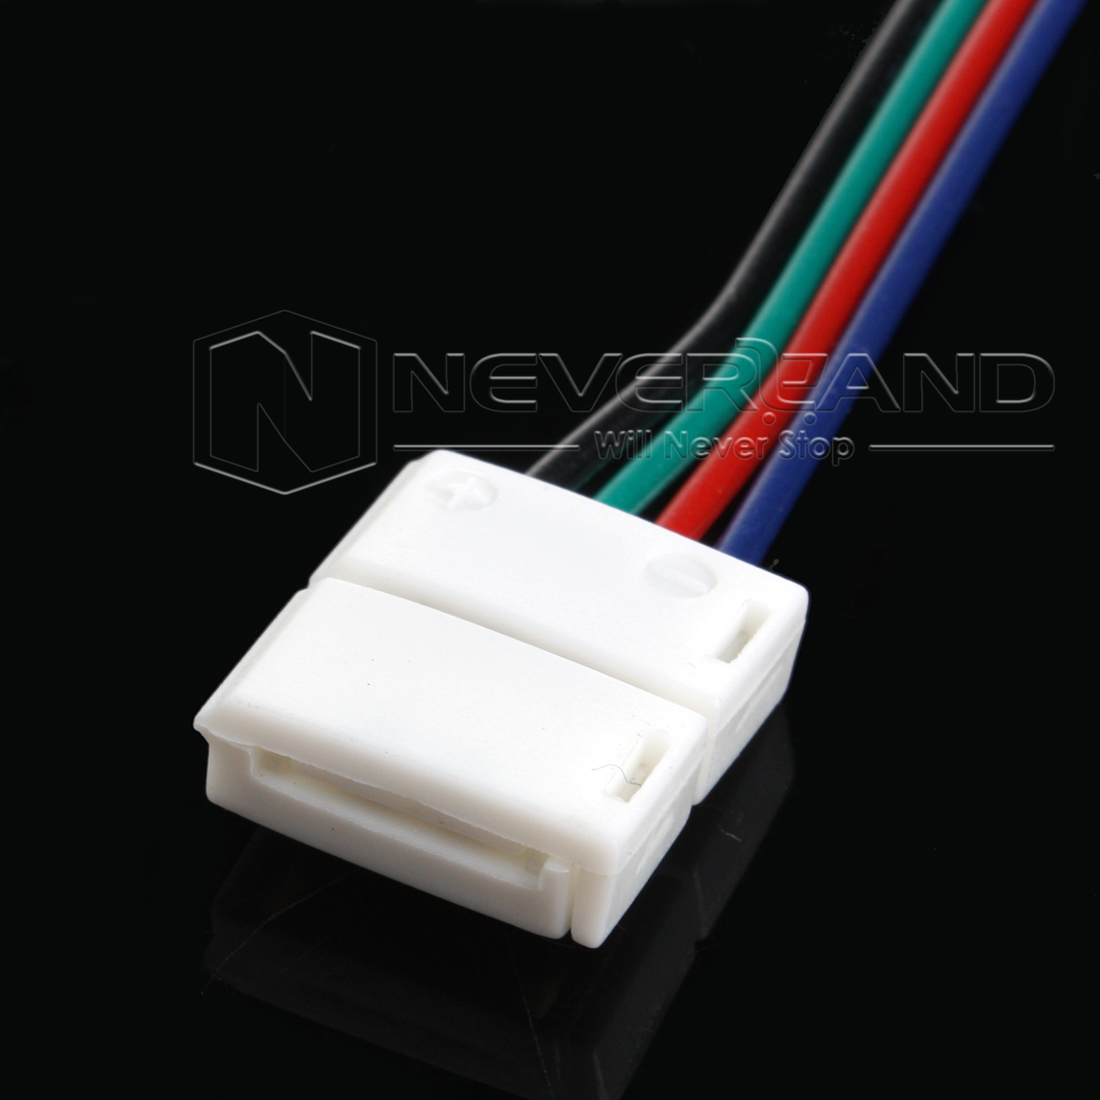 5050 led strip wiring diagram 04 dodge neon radio 5x 4 pin rgb light to controller connectors wire